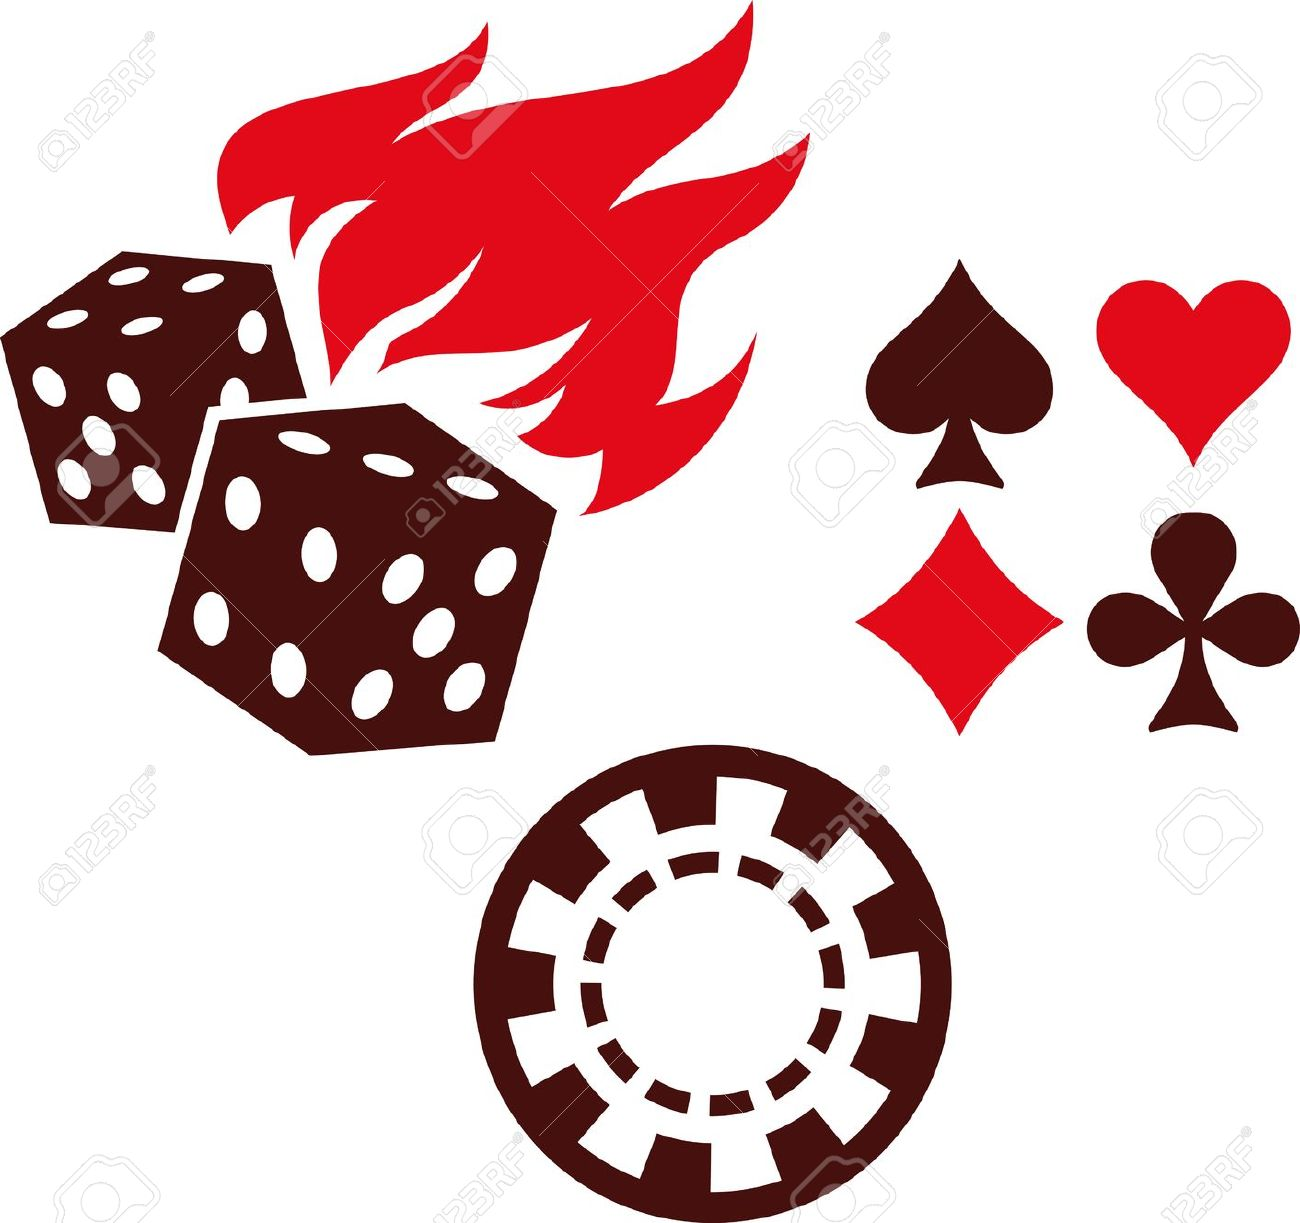 1300x1223 Casino Vectors, Photos And Psd Files Free Download